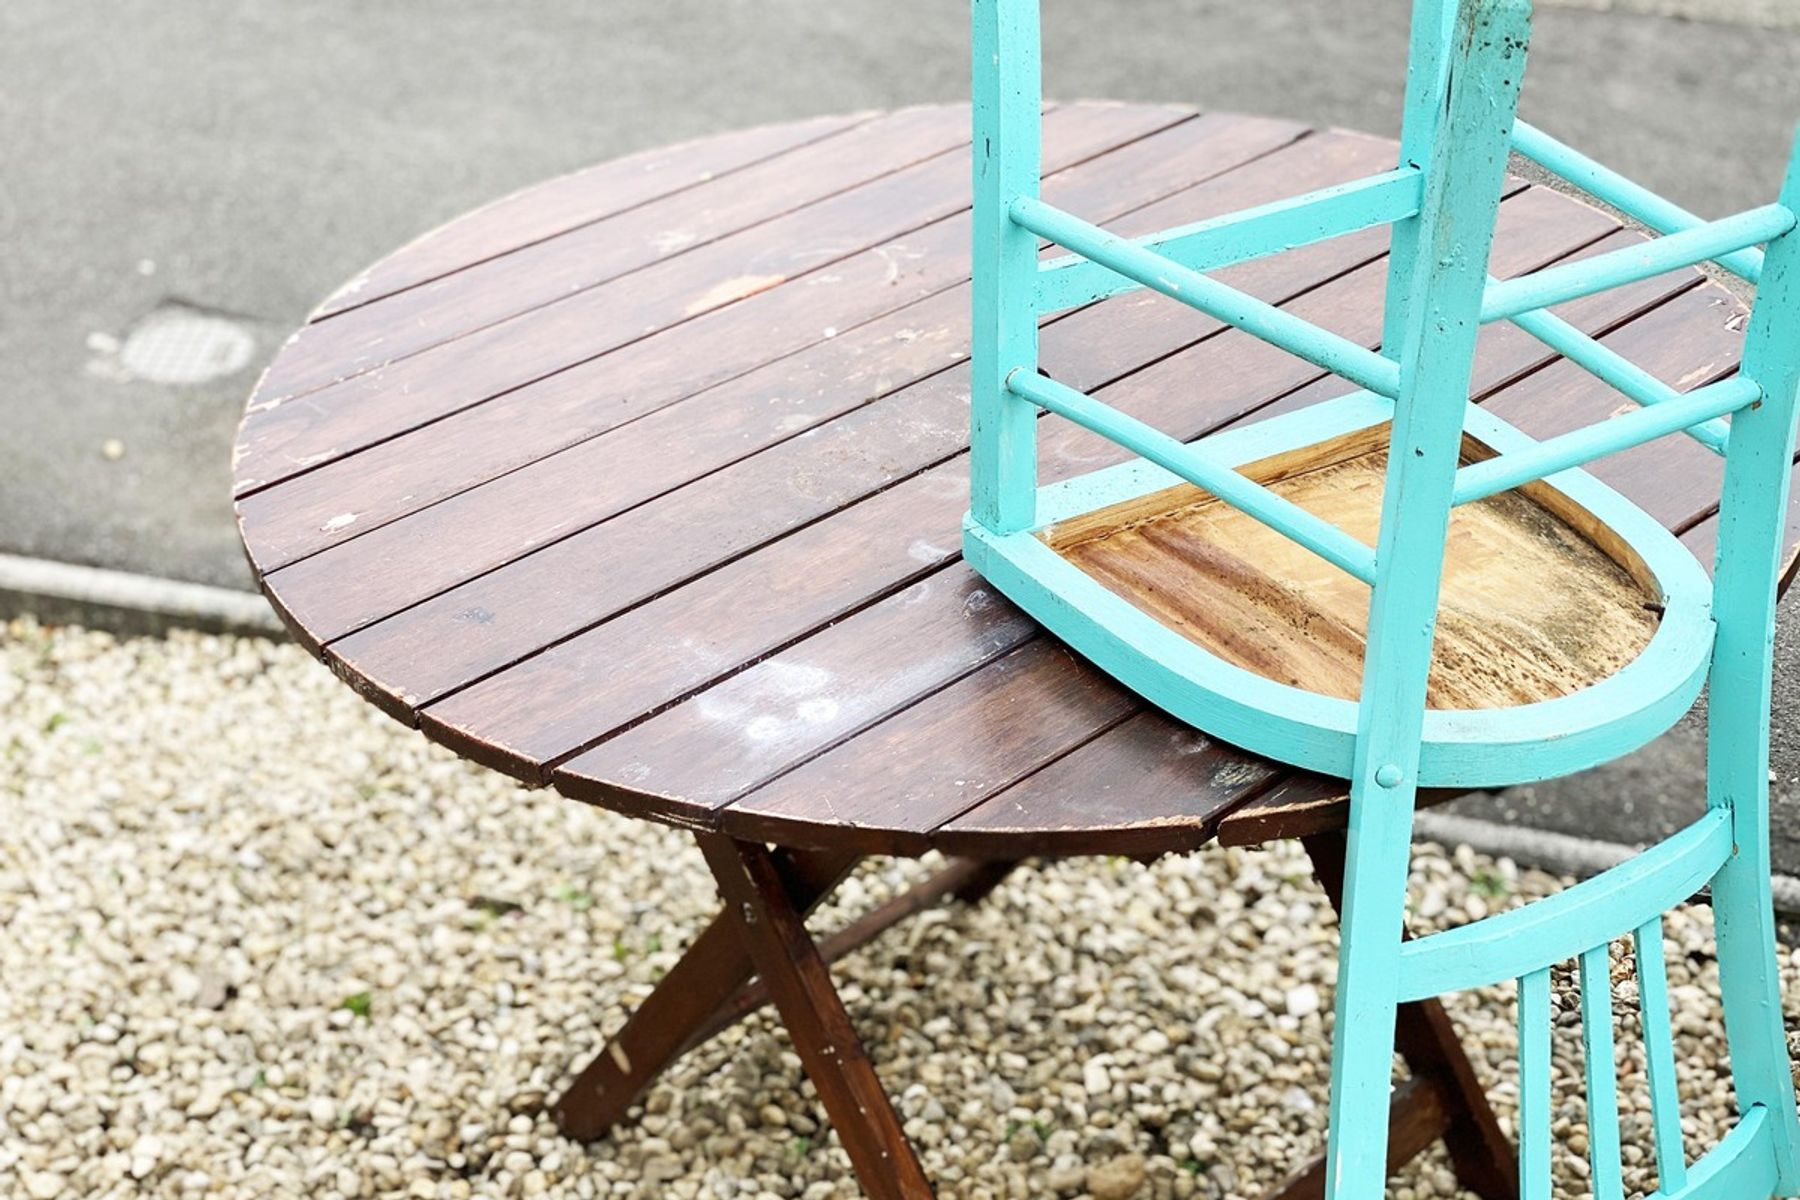 A blue wood chair upturned on top of an old wooden table